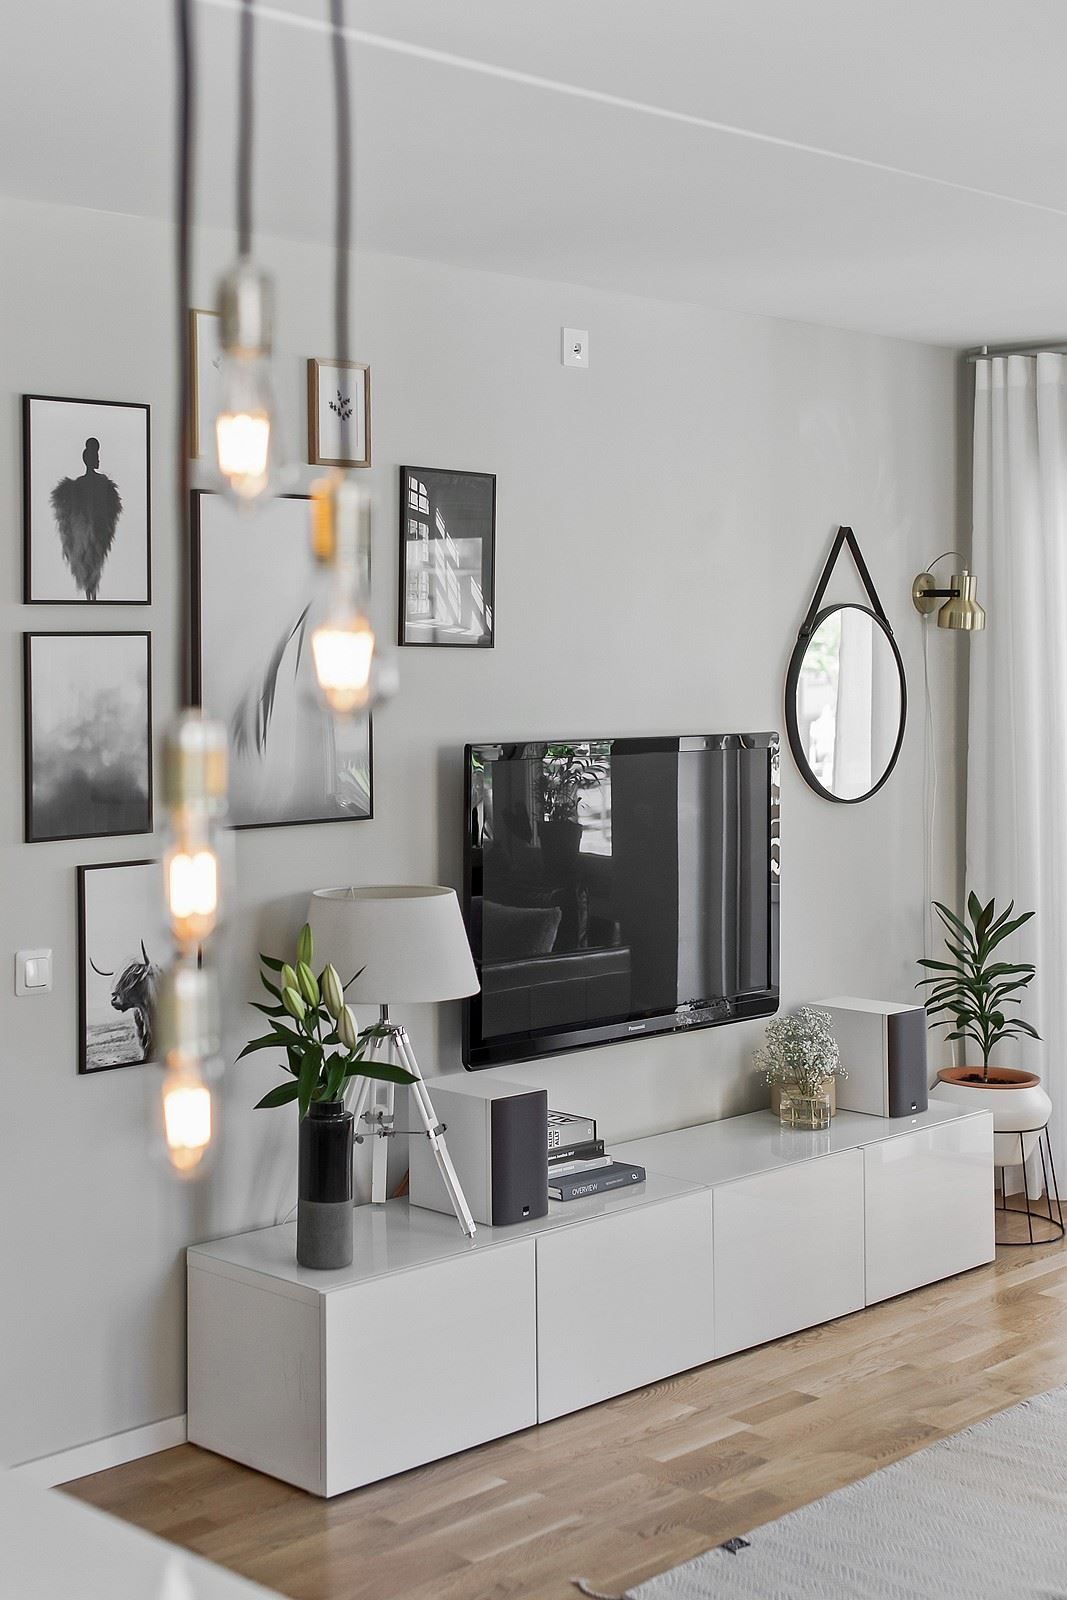 Home gallery wall living room also comment bien amenager un coin tv rh pinterest